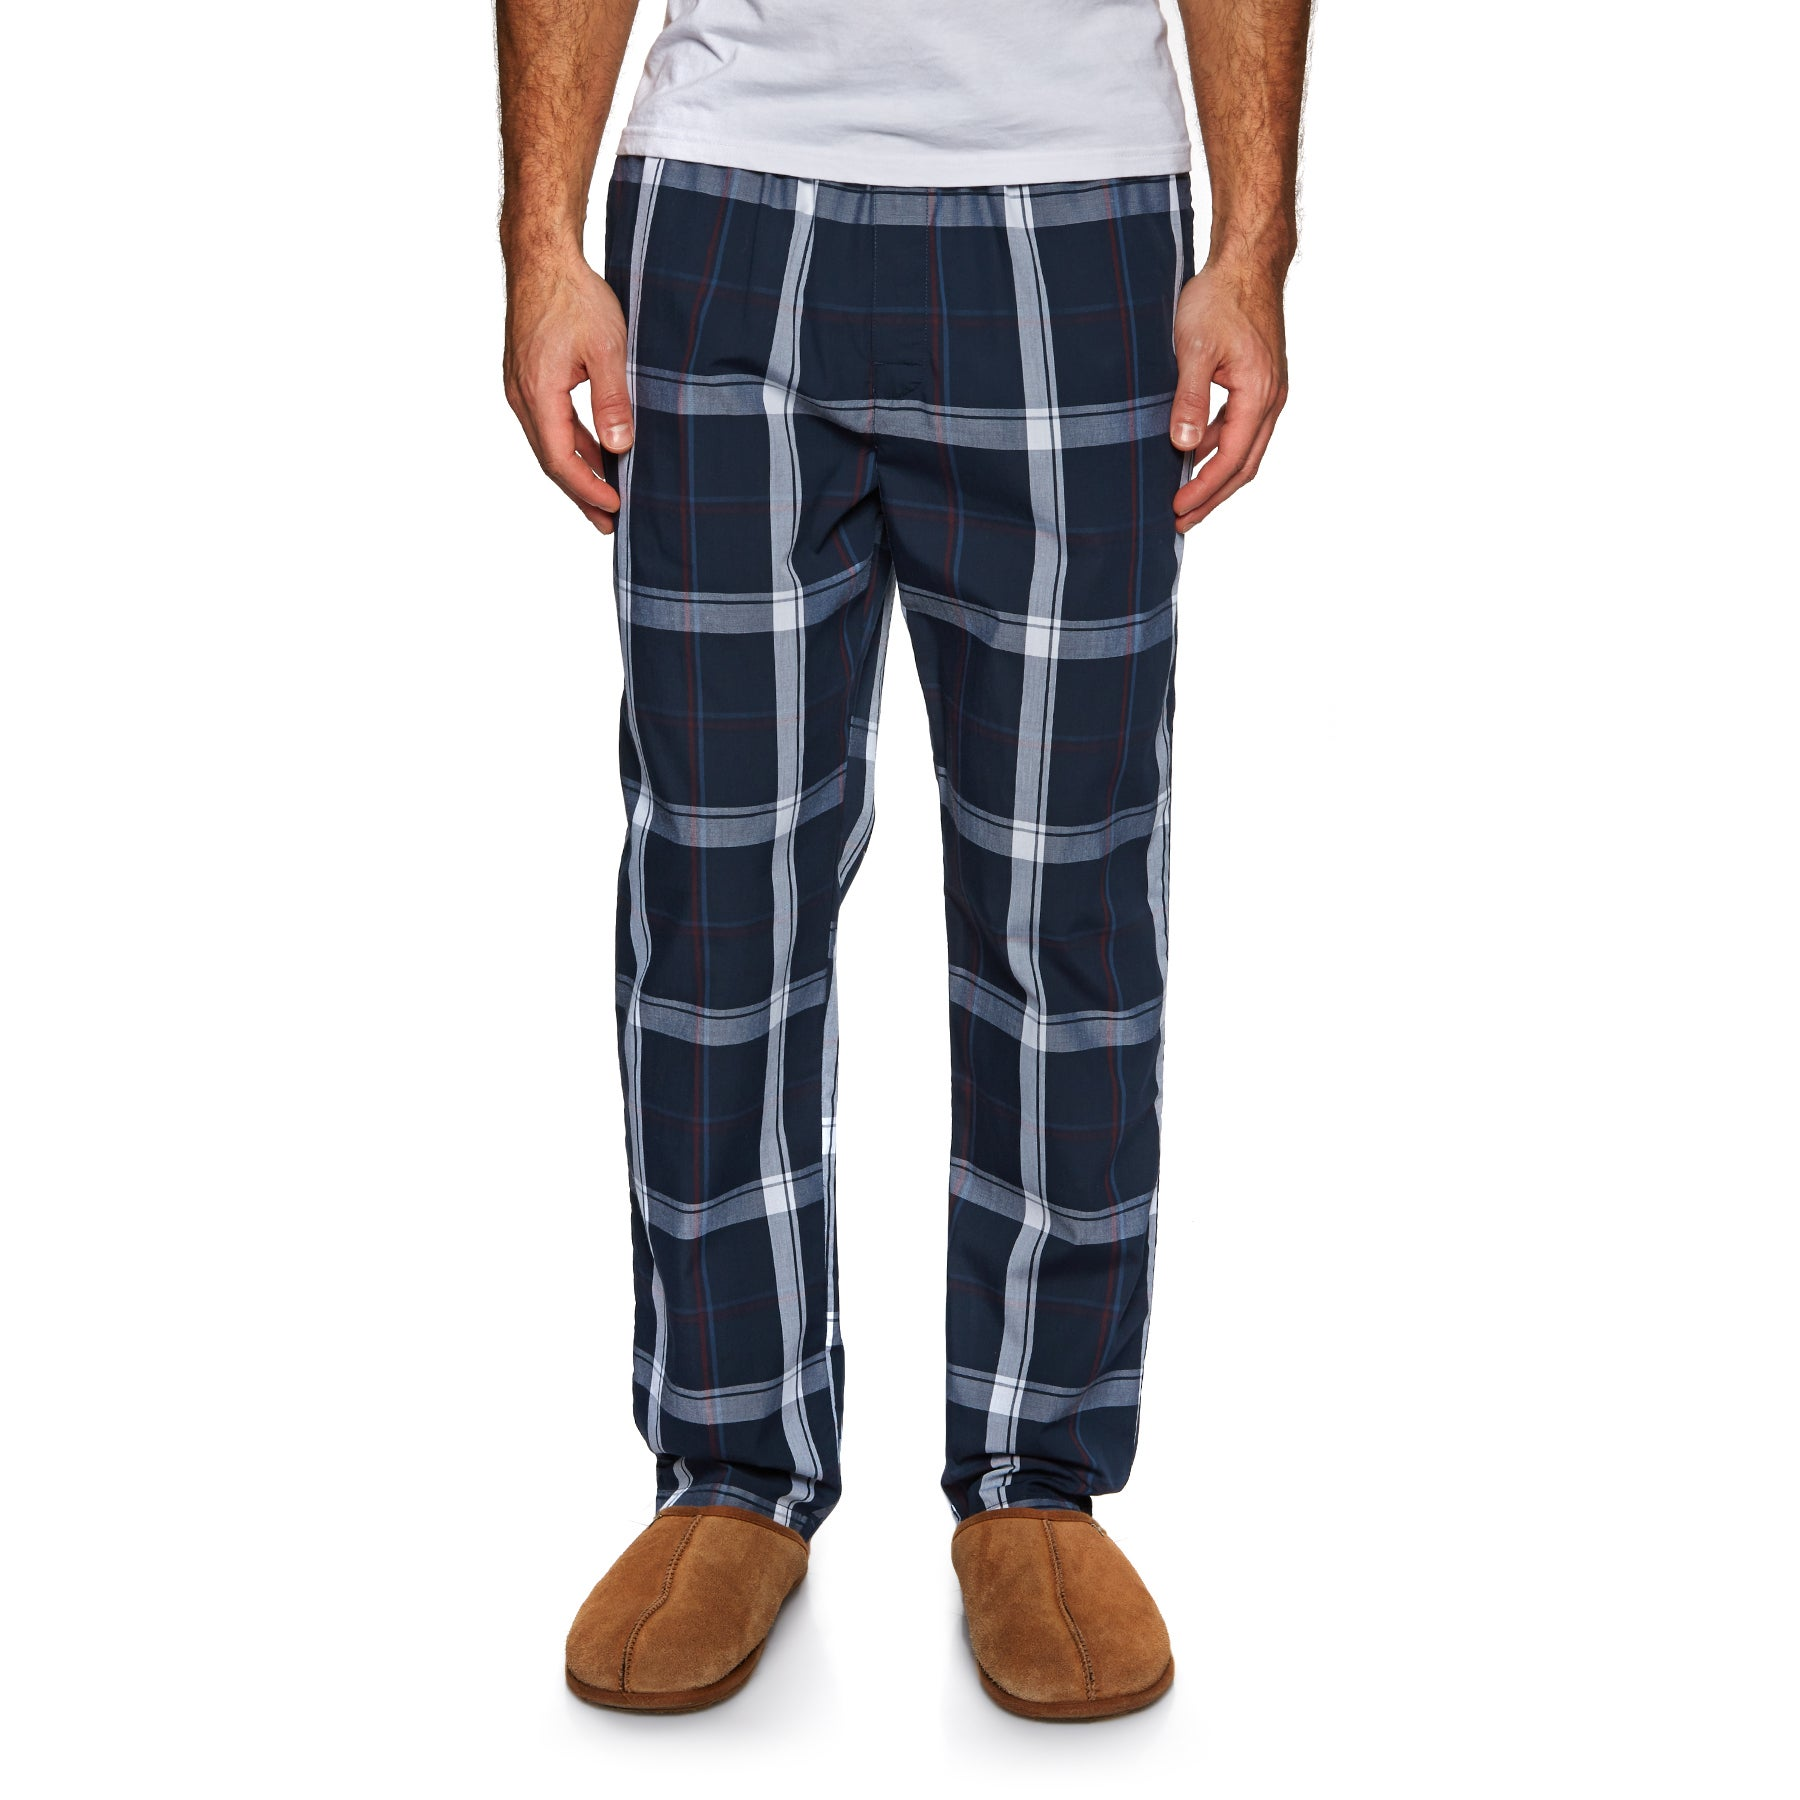 Calvin Klein Sleep Pant Pyjamas - Campus Plaid Navy